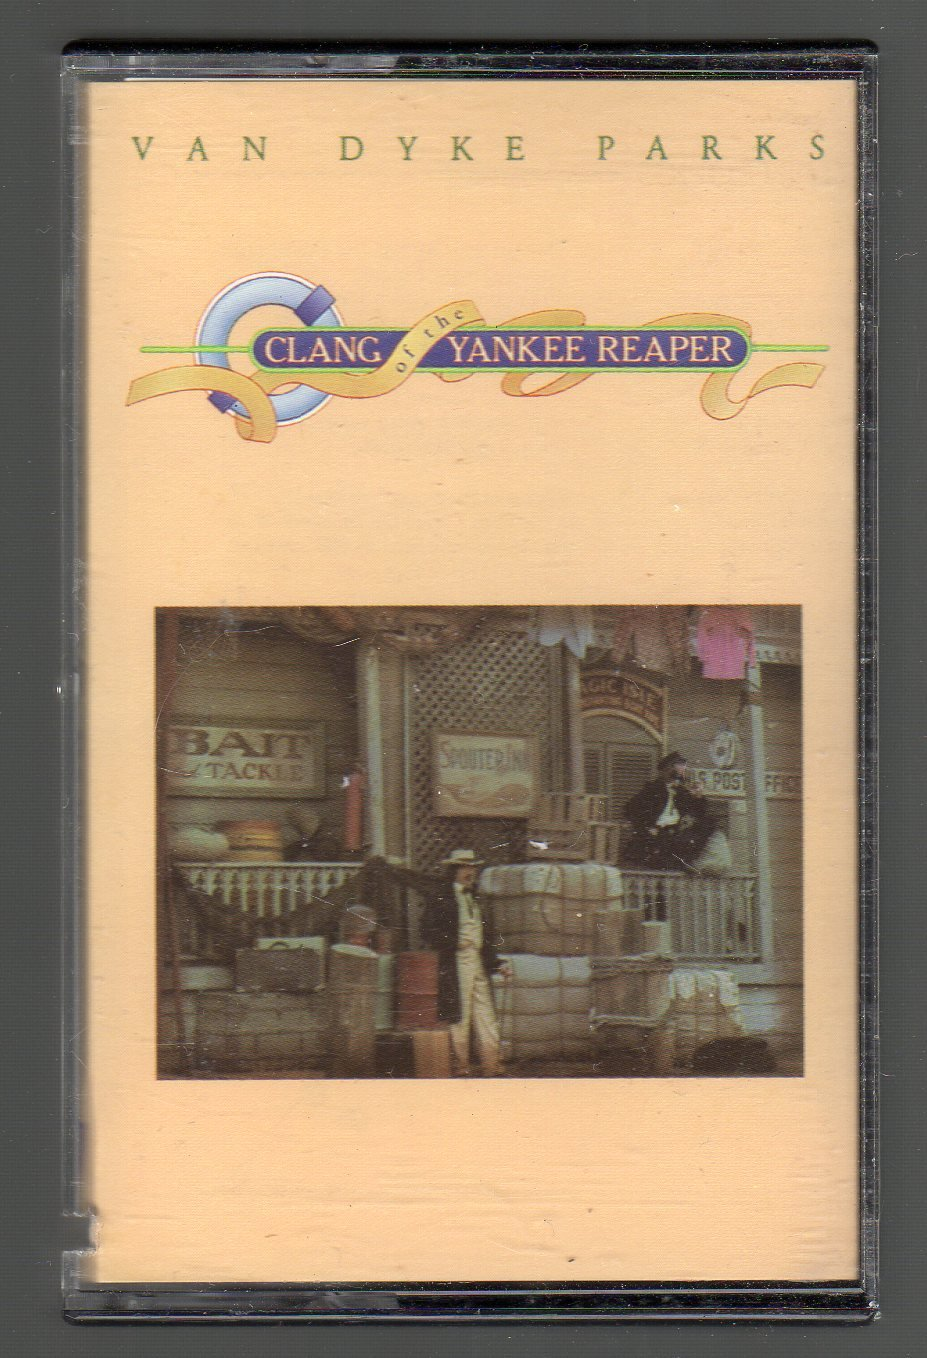 Van Dyke Parks - Clang Of The Yankee Reaper Cassette Tape